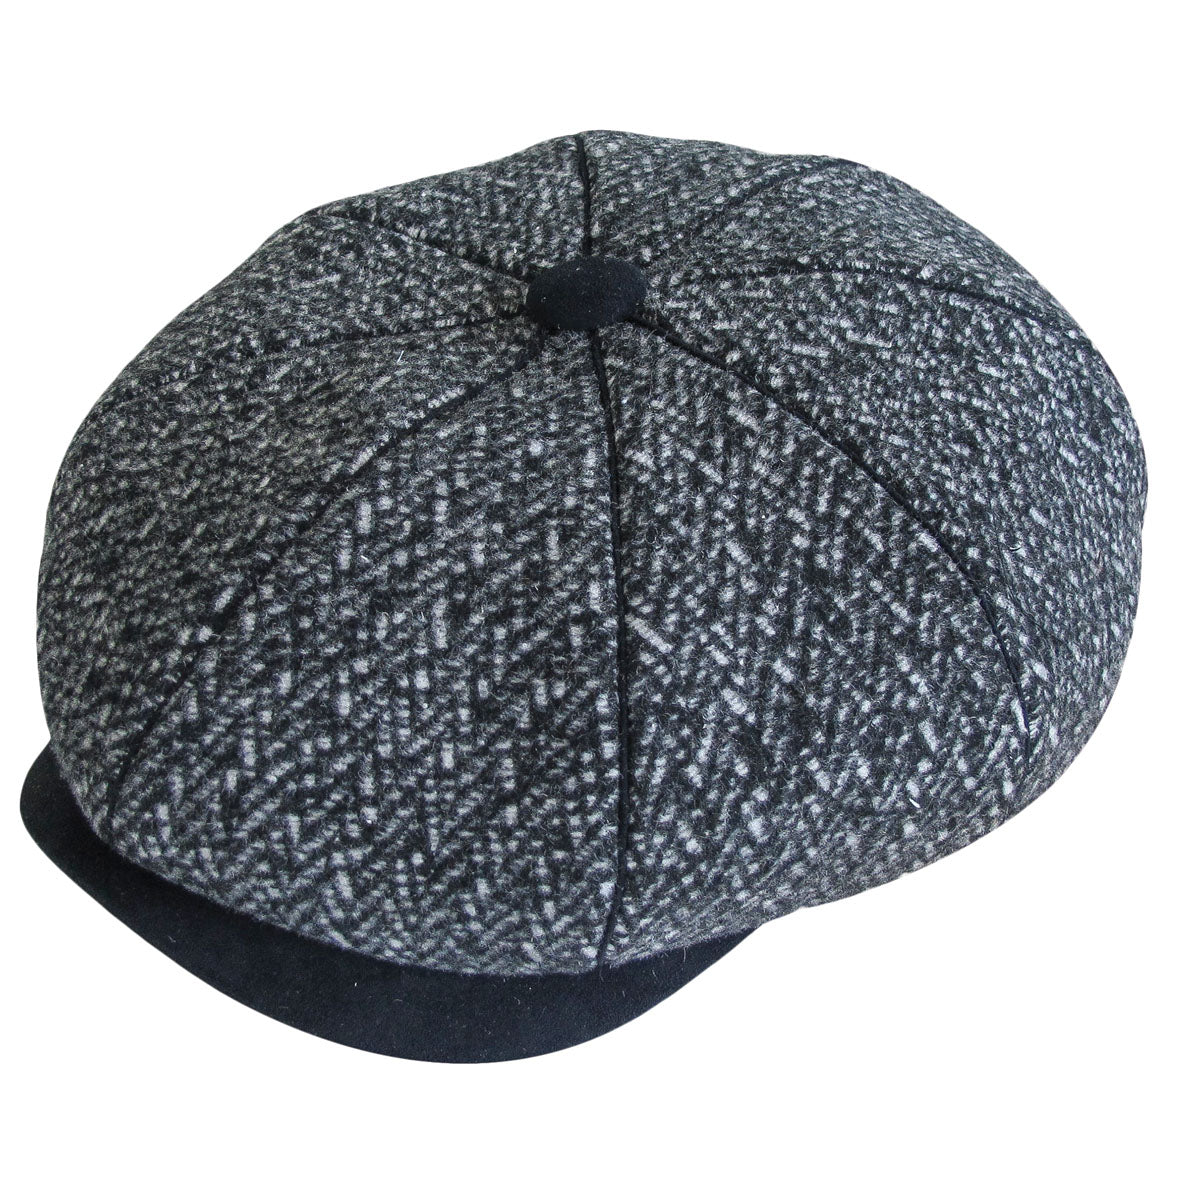 Overton Tweed 8-Panel Cap by Dobbs – Levine Hat Co. 37232bd5a32